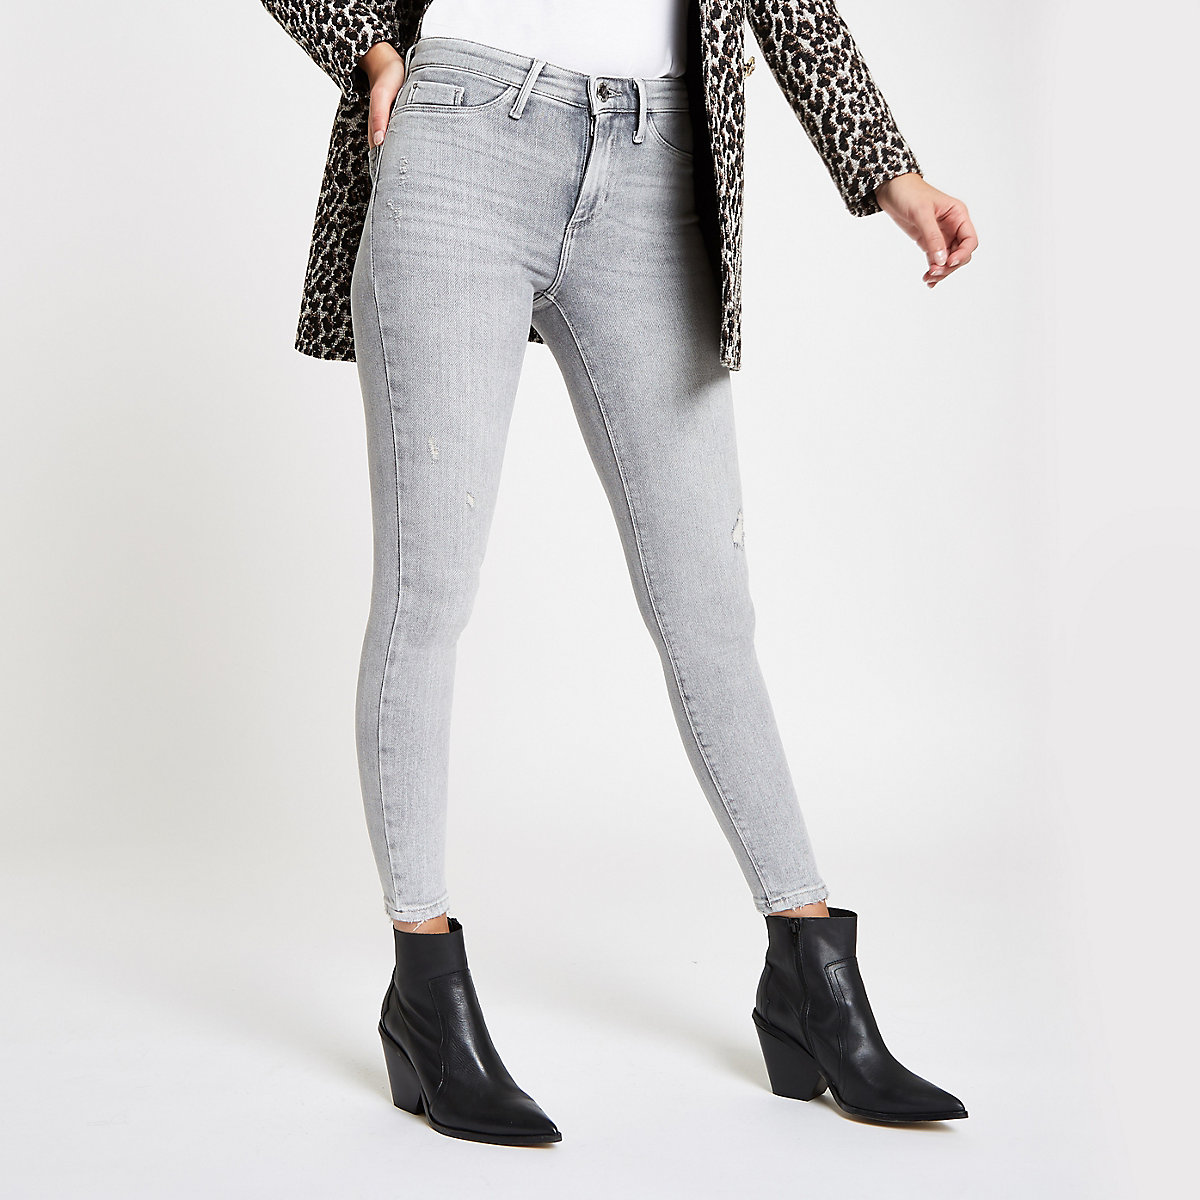 Grey RI Molly mid rise jeggings